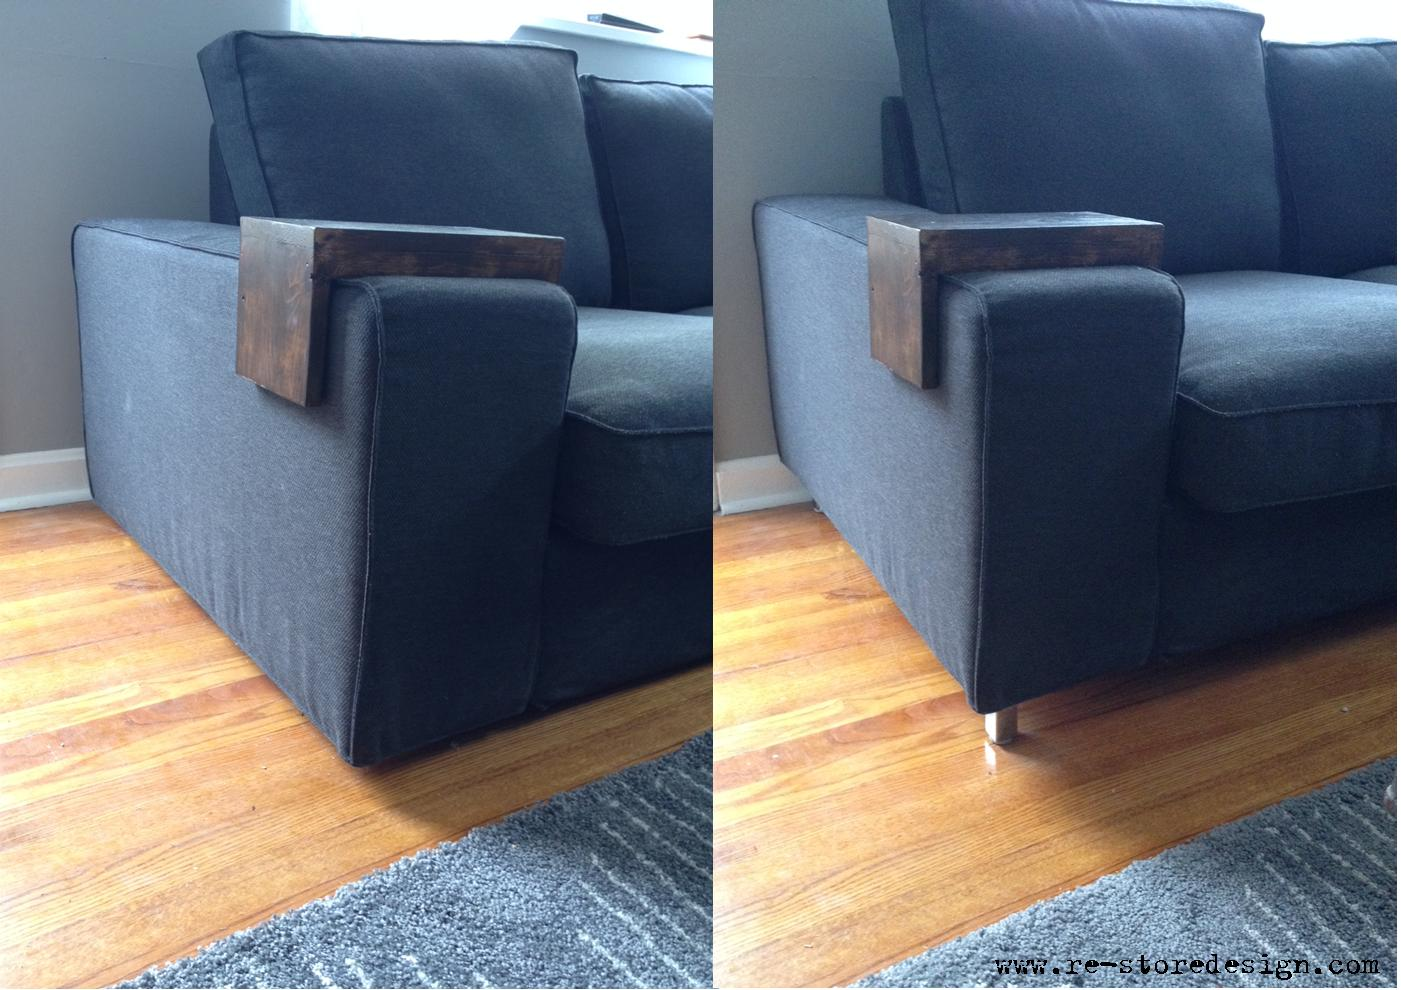 Ikea Kivik Couch Update Behind The Scenes Of K A Design